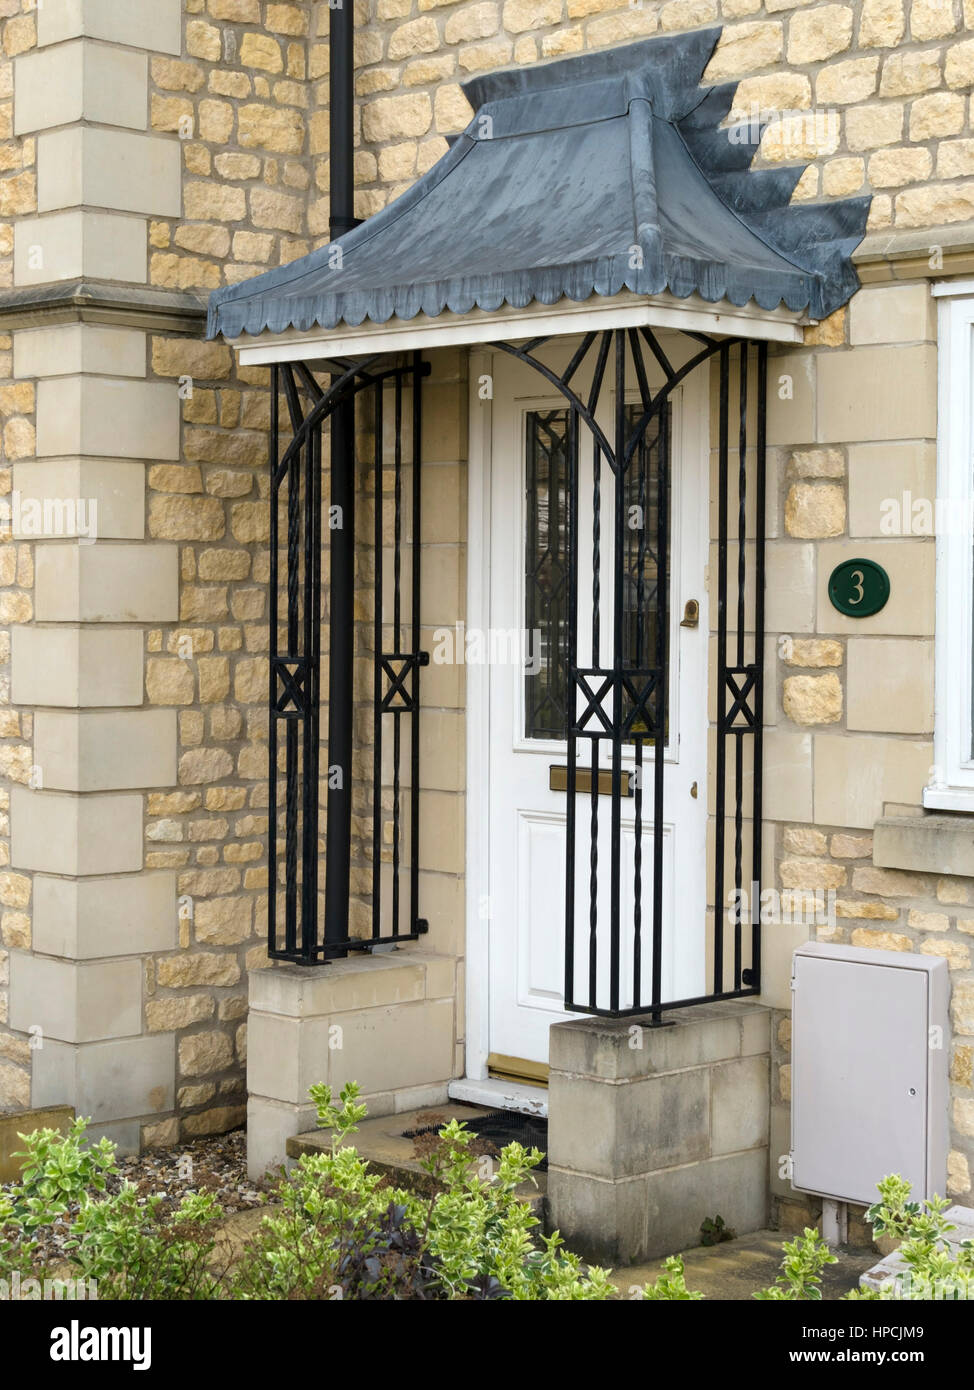 House Front Door With Ornate Wrought Iron Porch Railings And Lead Flashed  Roof Canopy, UK